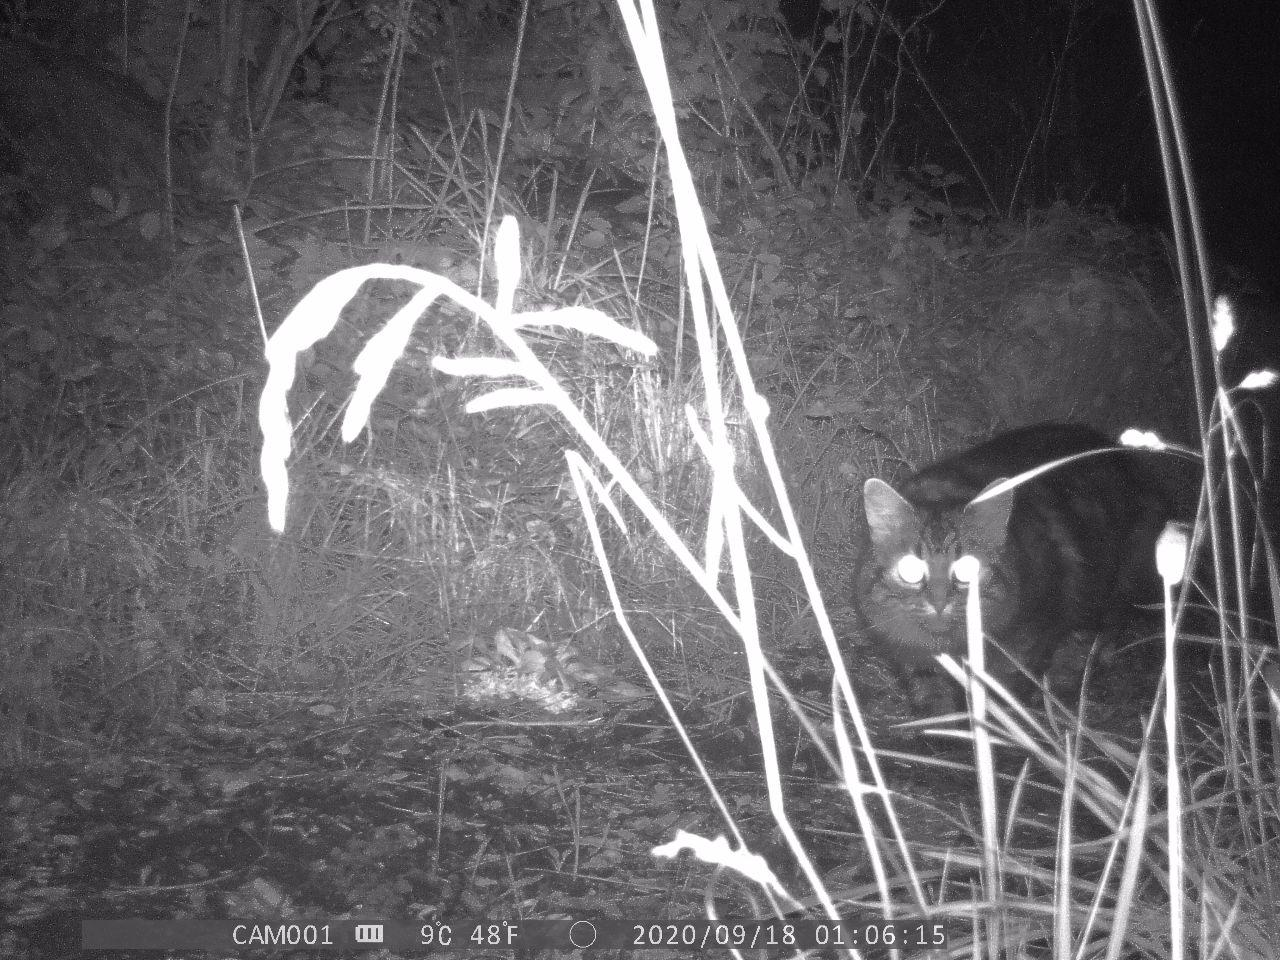 Wildcat enters from the right, eyes glowing and alert